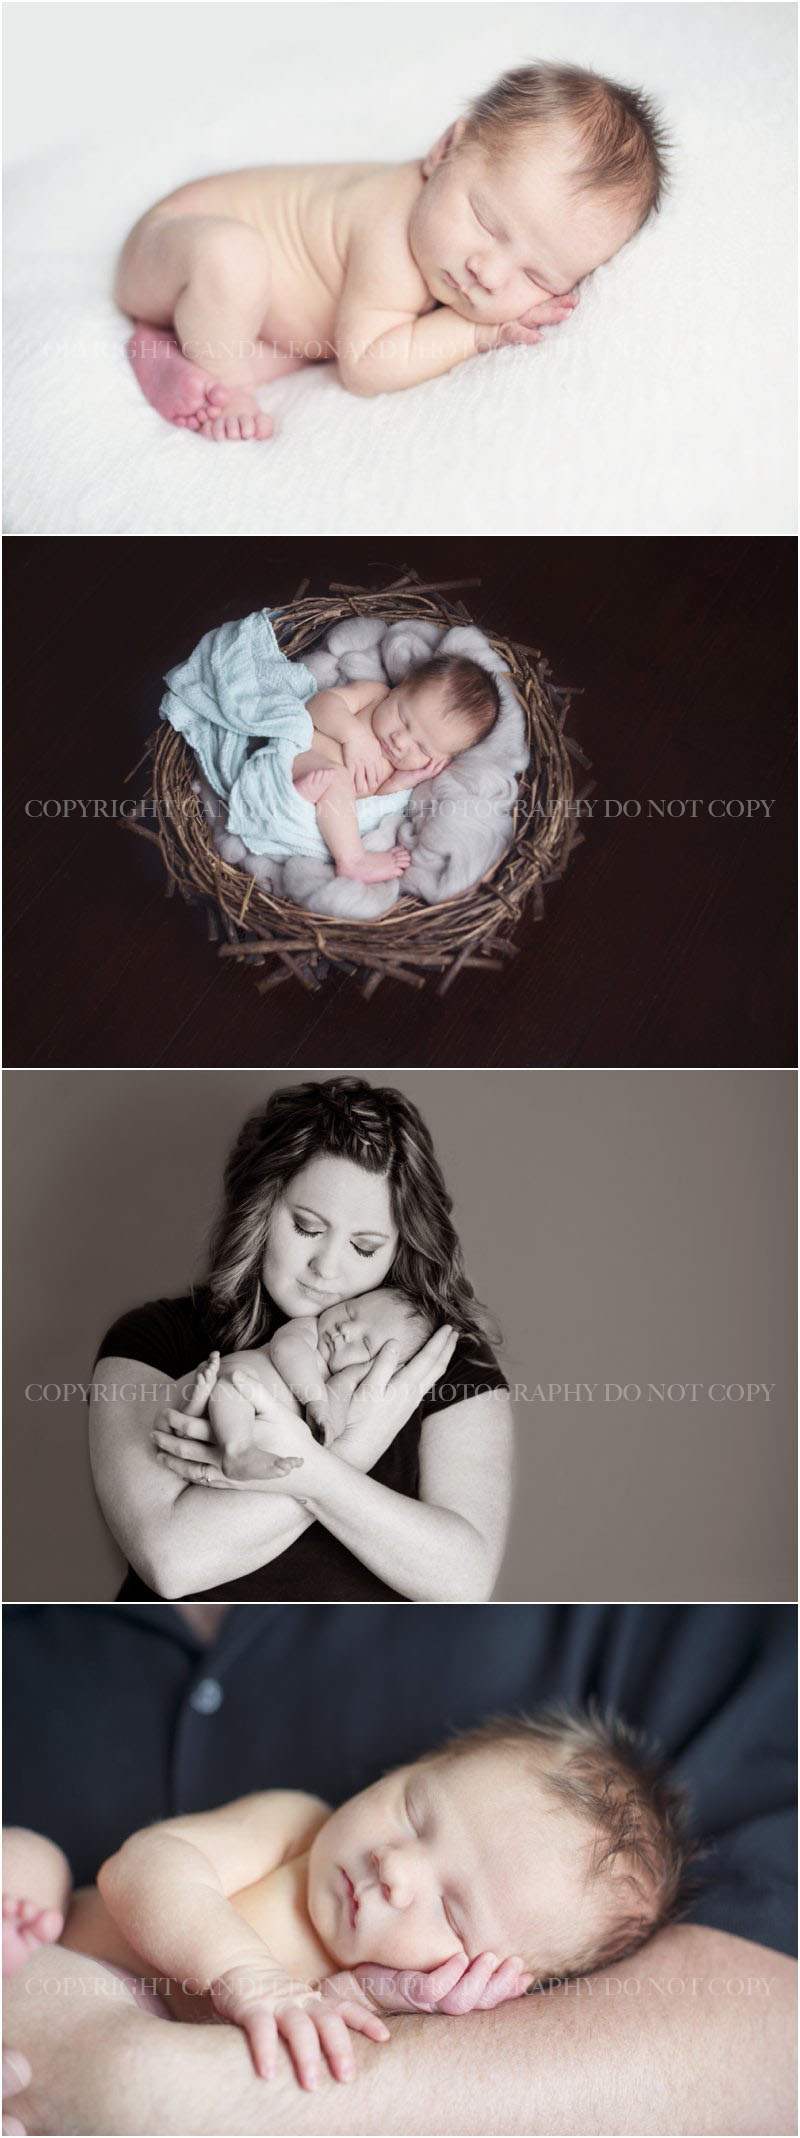 Asheboro_NC_Newborn_photographer_0923